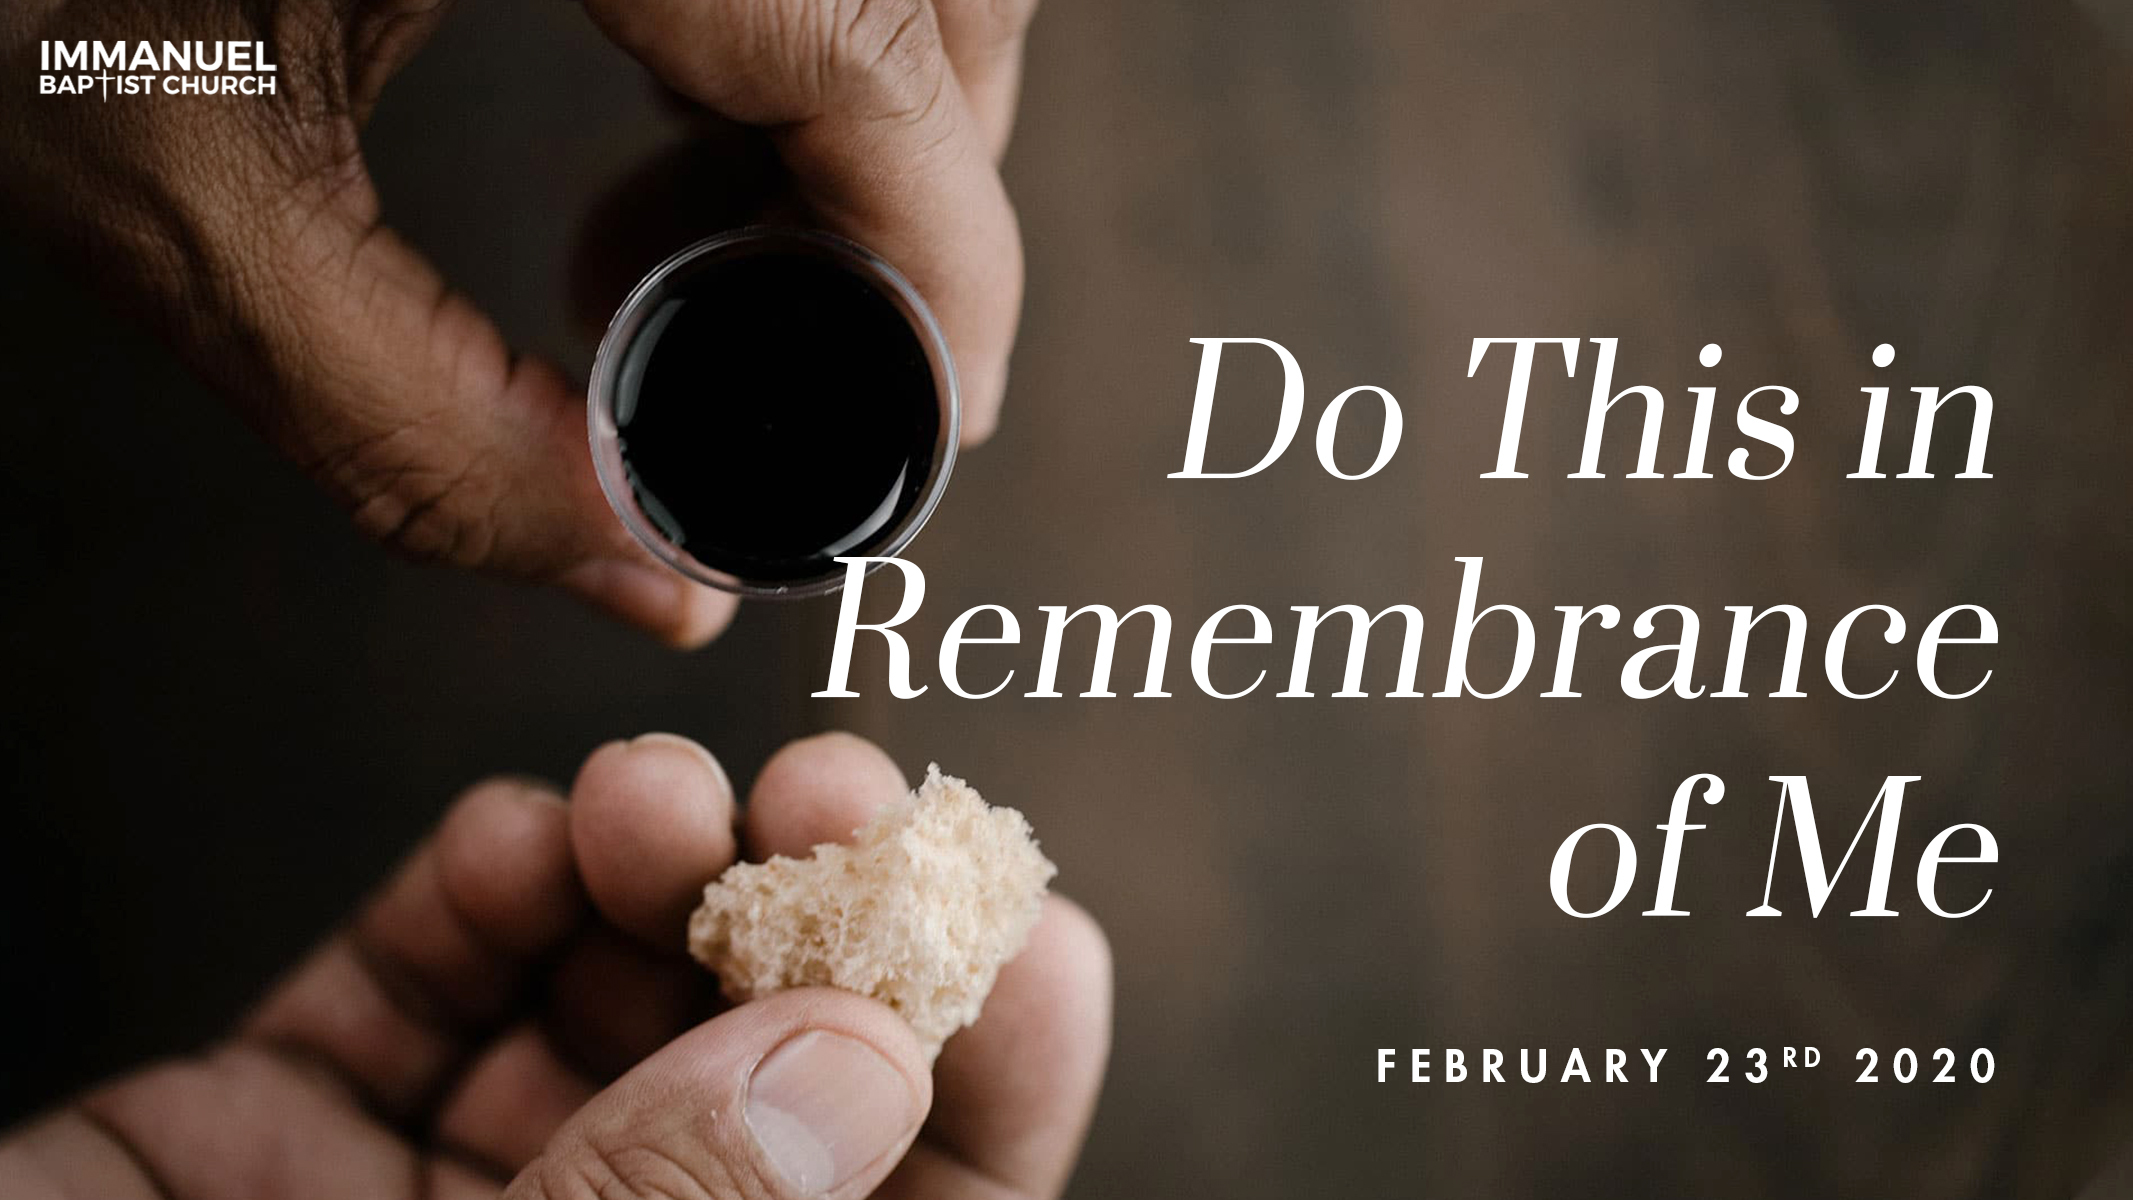 Do This in Remembrance of Me: The Body and Blood of Christ